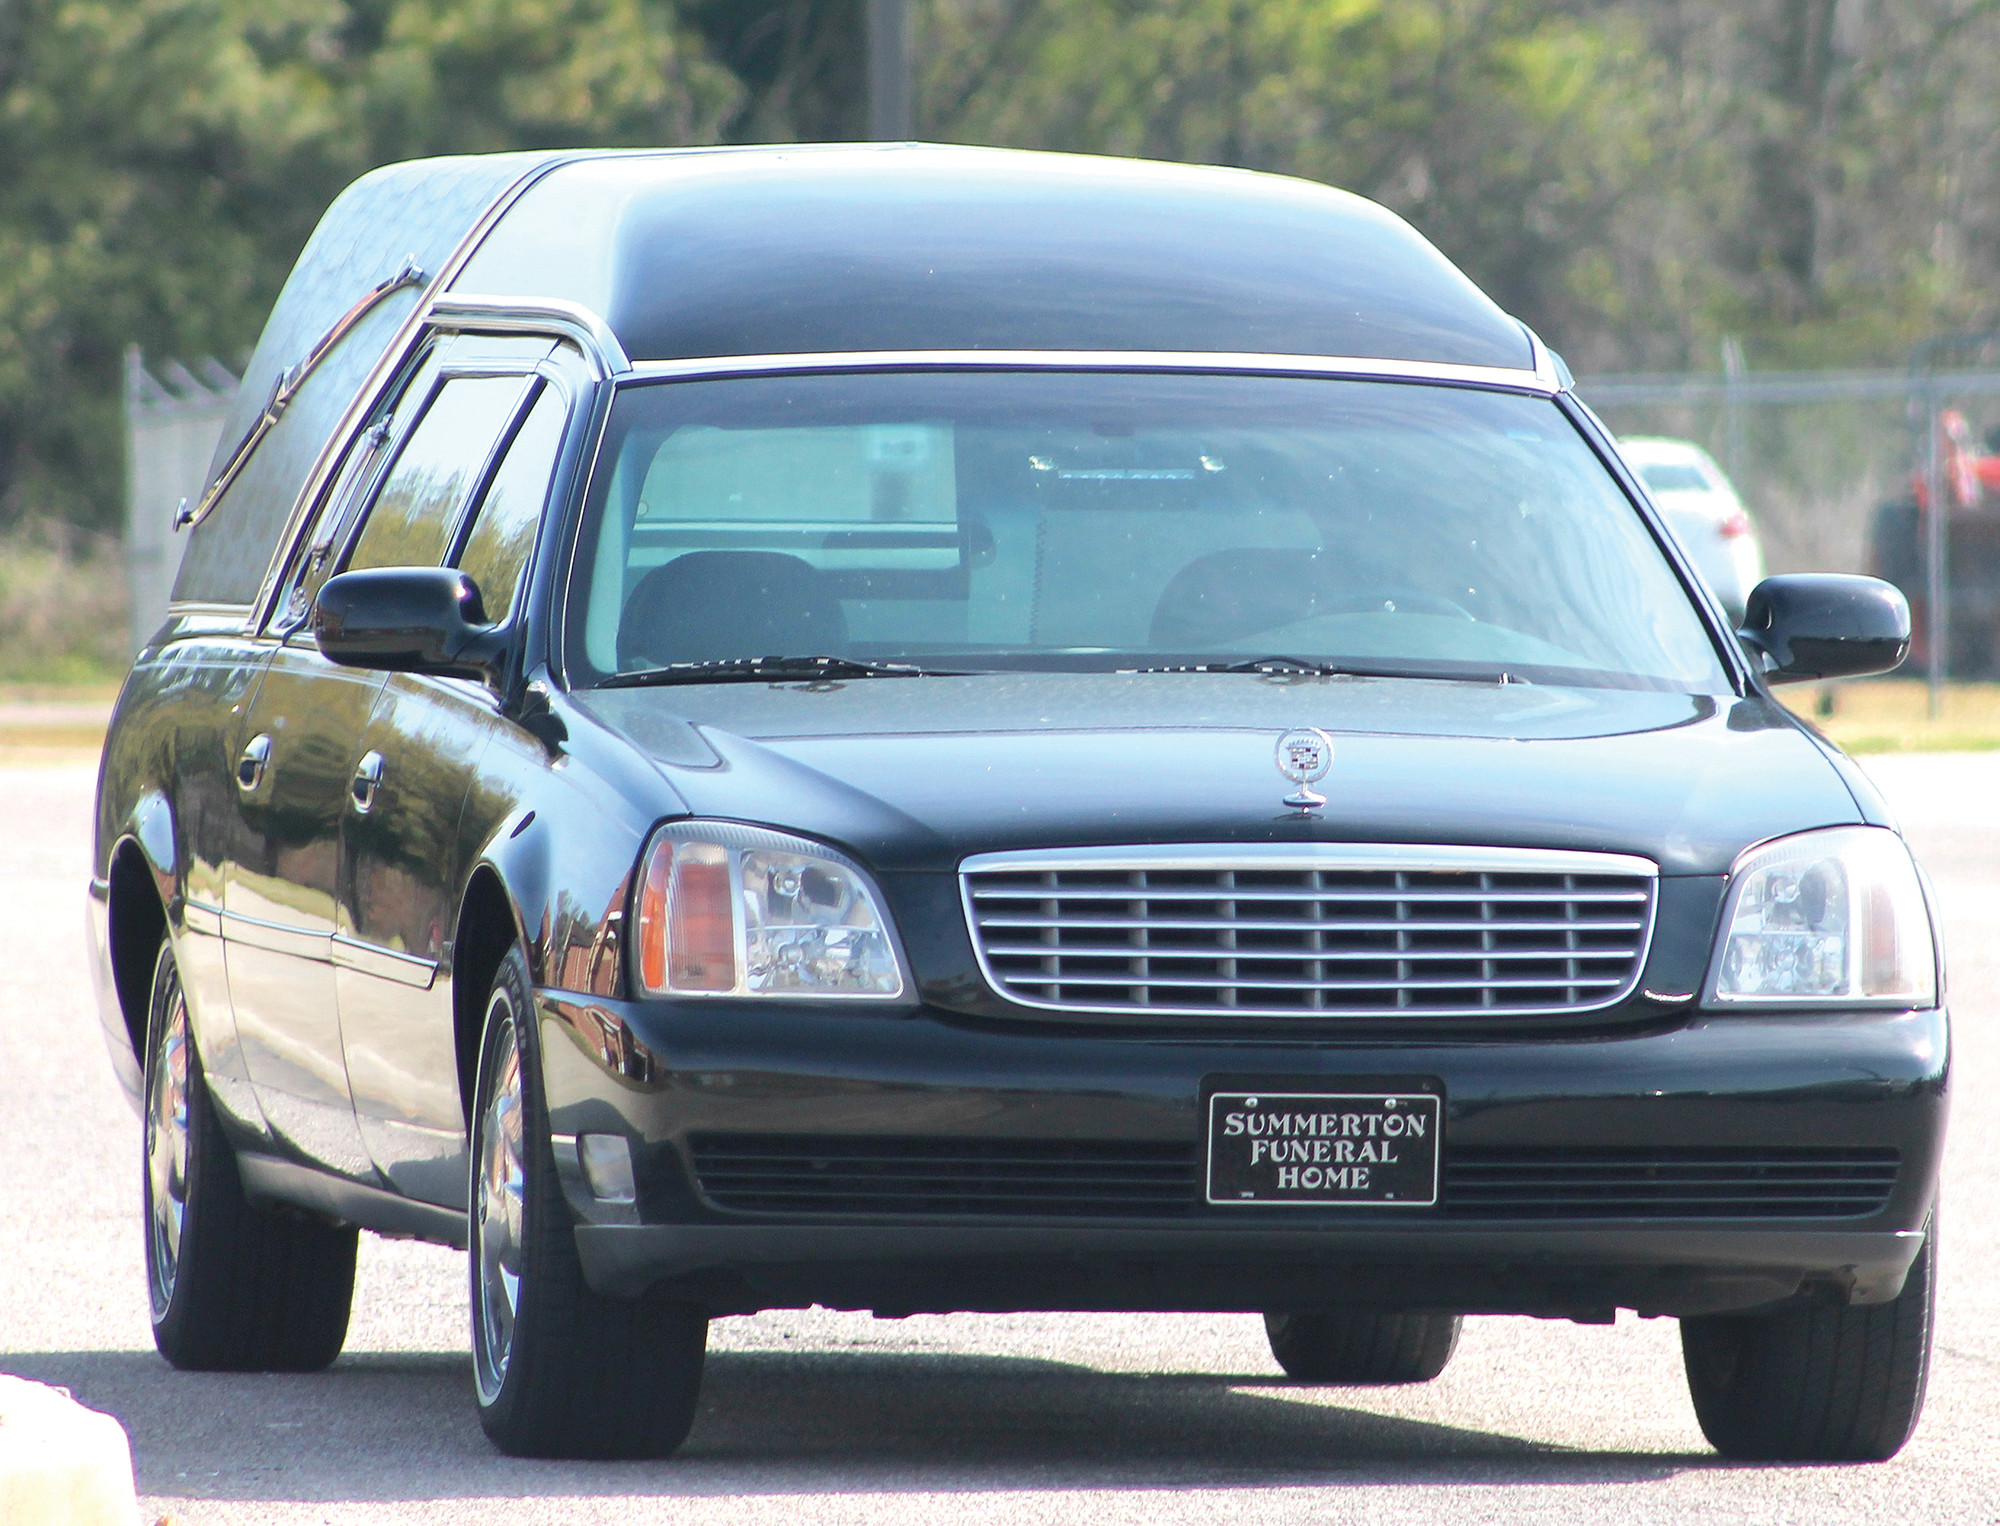 Summerton Funeral Home had the most dramatic end to Wednesday's Prom Promise program. The local funeral home parked a large black hearse  outside the school demonstrating the worst outcome from making poor choices on prom night.